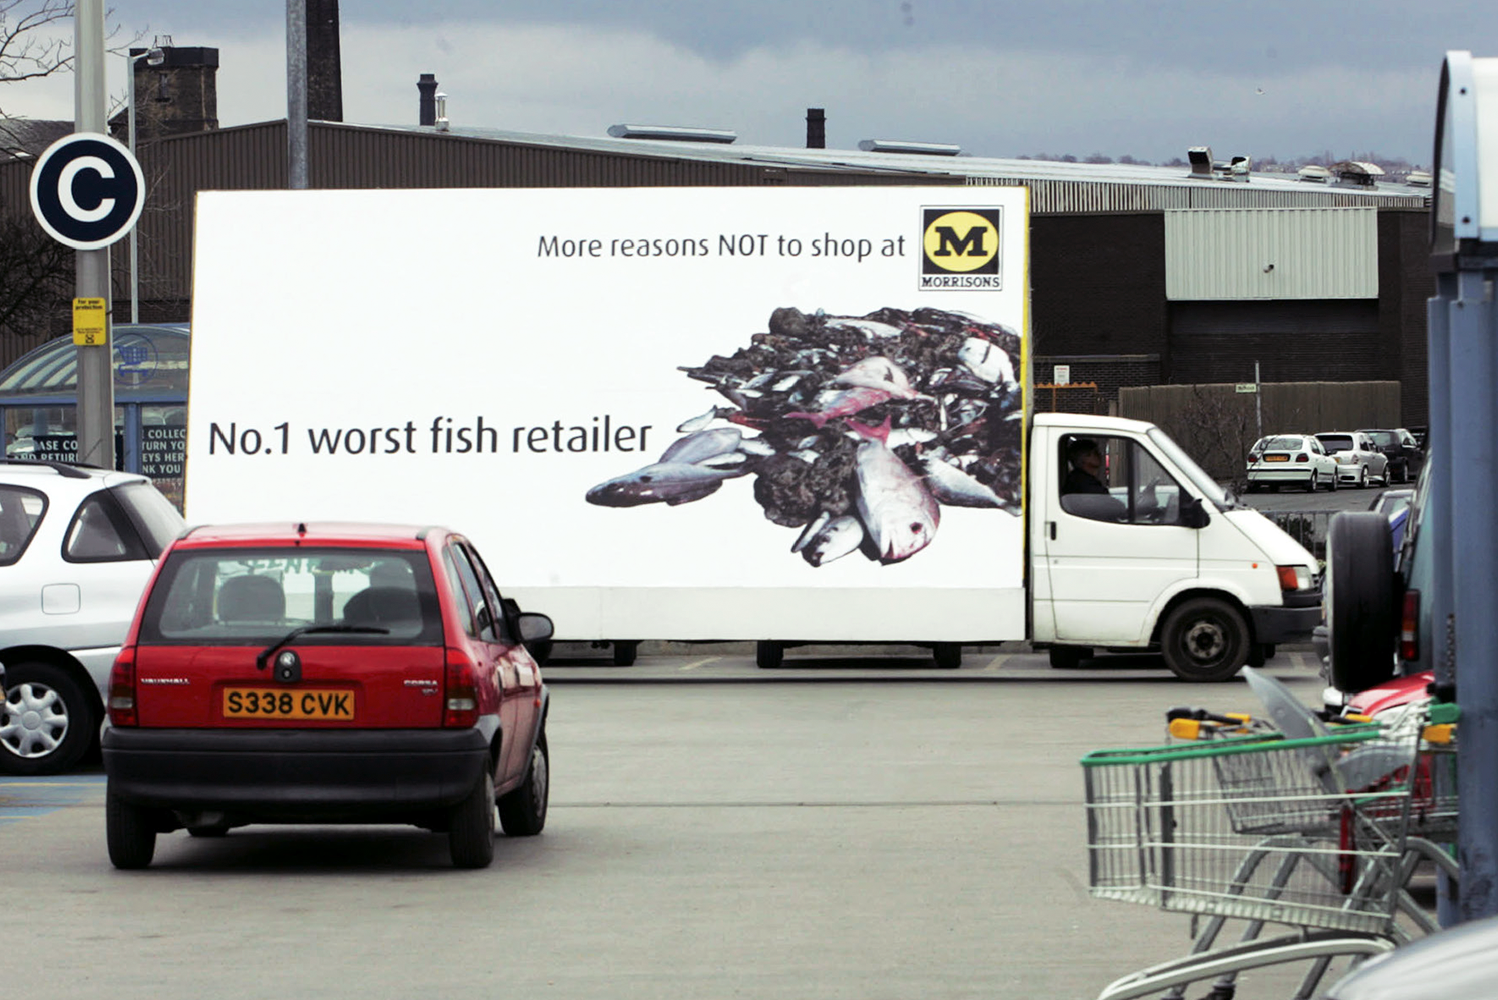 Campaign_Greenpeace_Morrisons_WorstFishRetailer.png